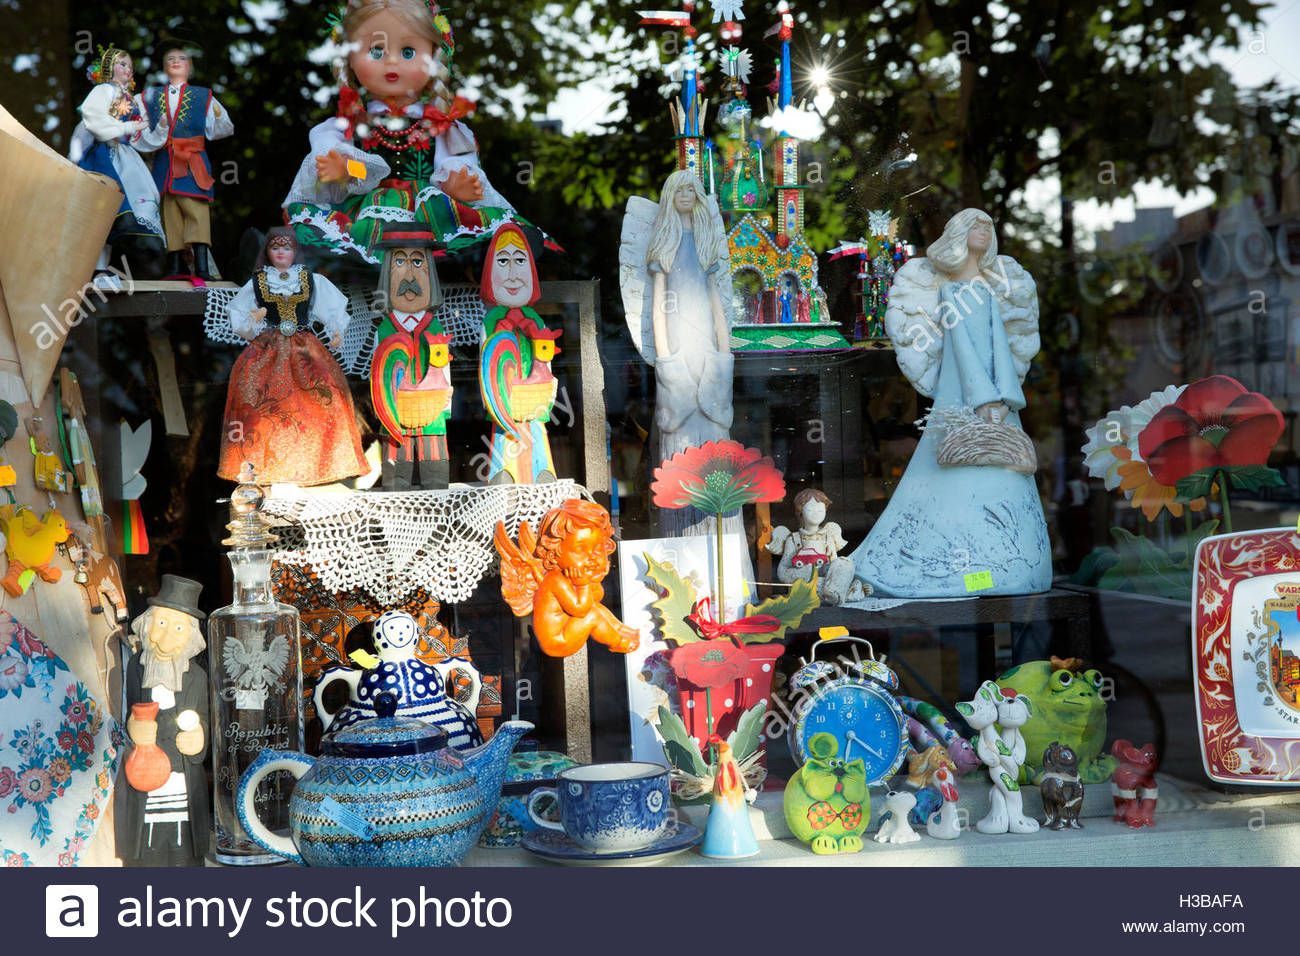 close up of souvenir shop in warsaw poland stock photo 122566286 alamy. Black Bedroom Furniture Sets. Home Design Ideas